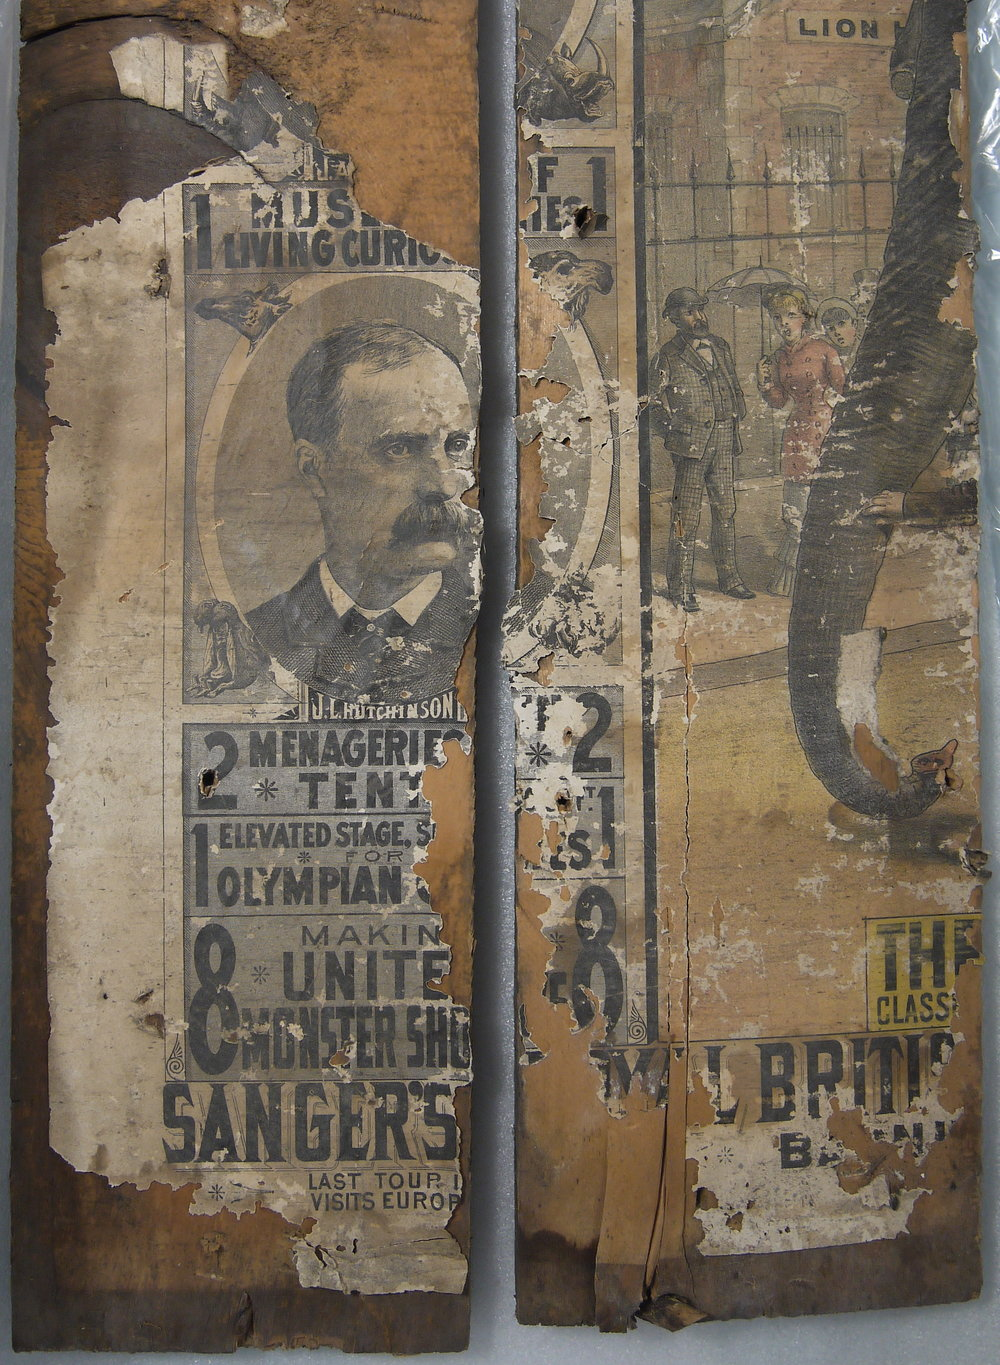 Detail of posters before conservation.